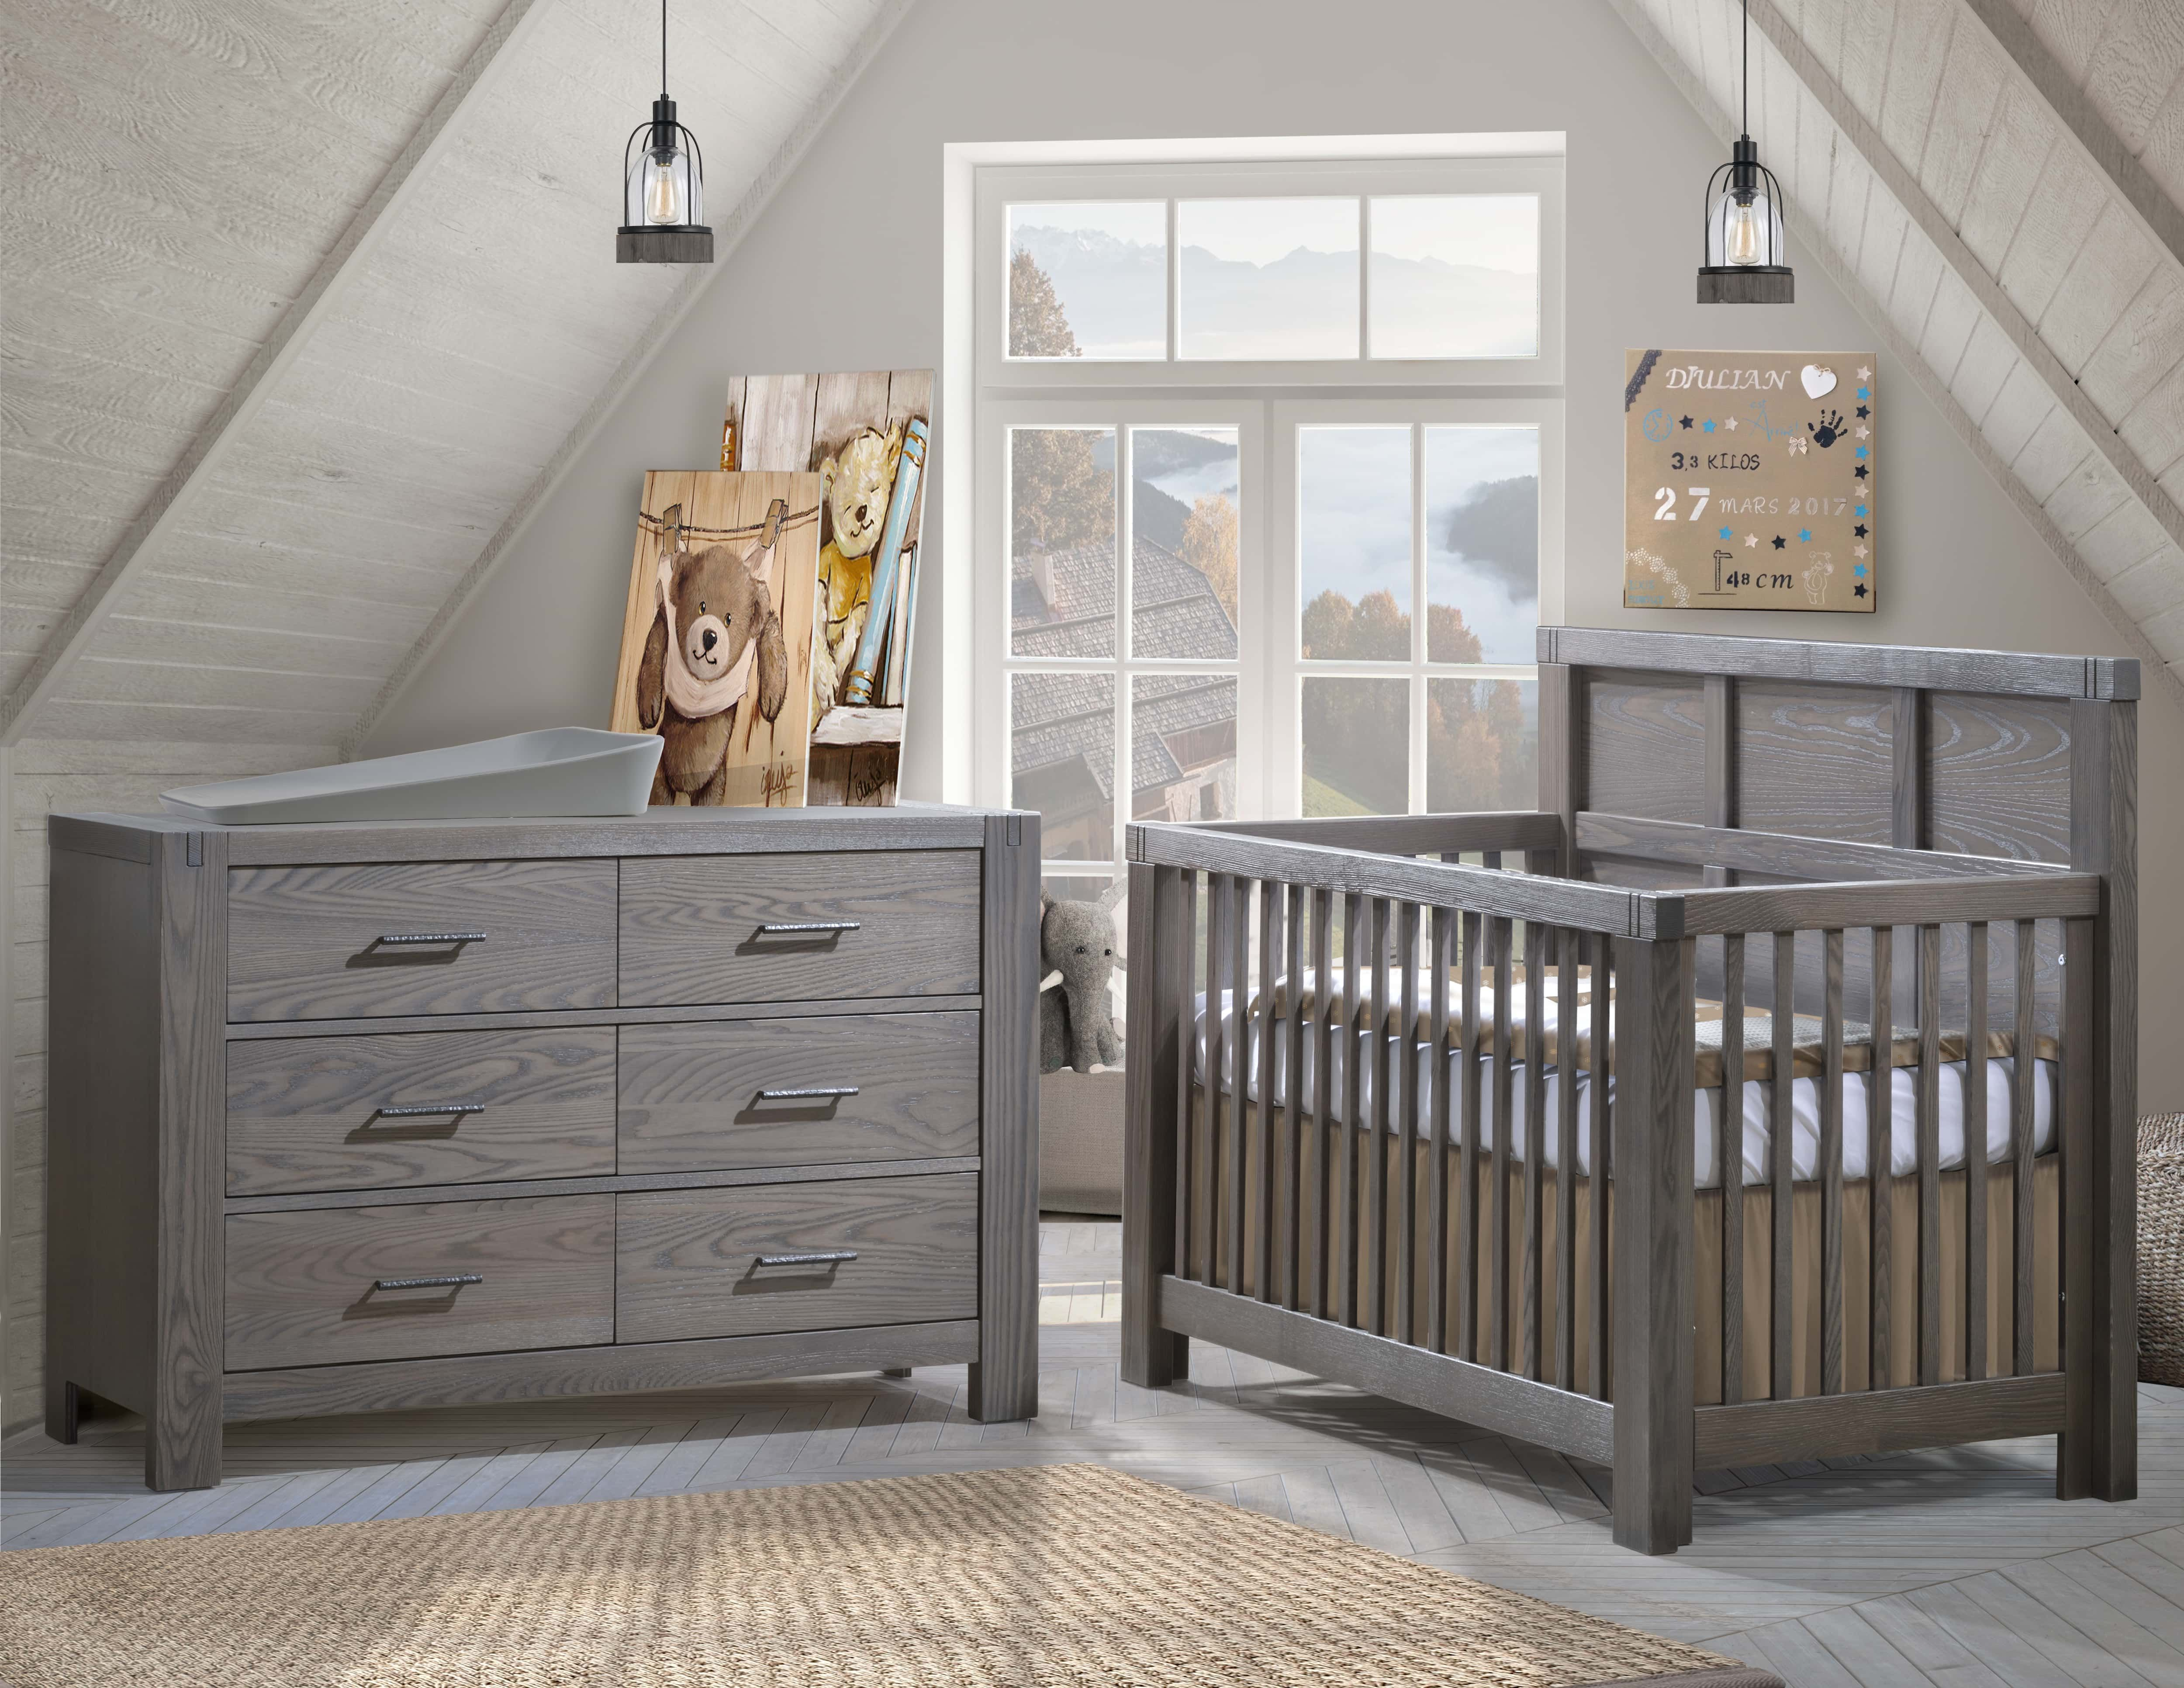 A Beautiful Rustic Solid Wood Nursery Set The Newest Finish